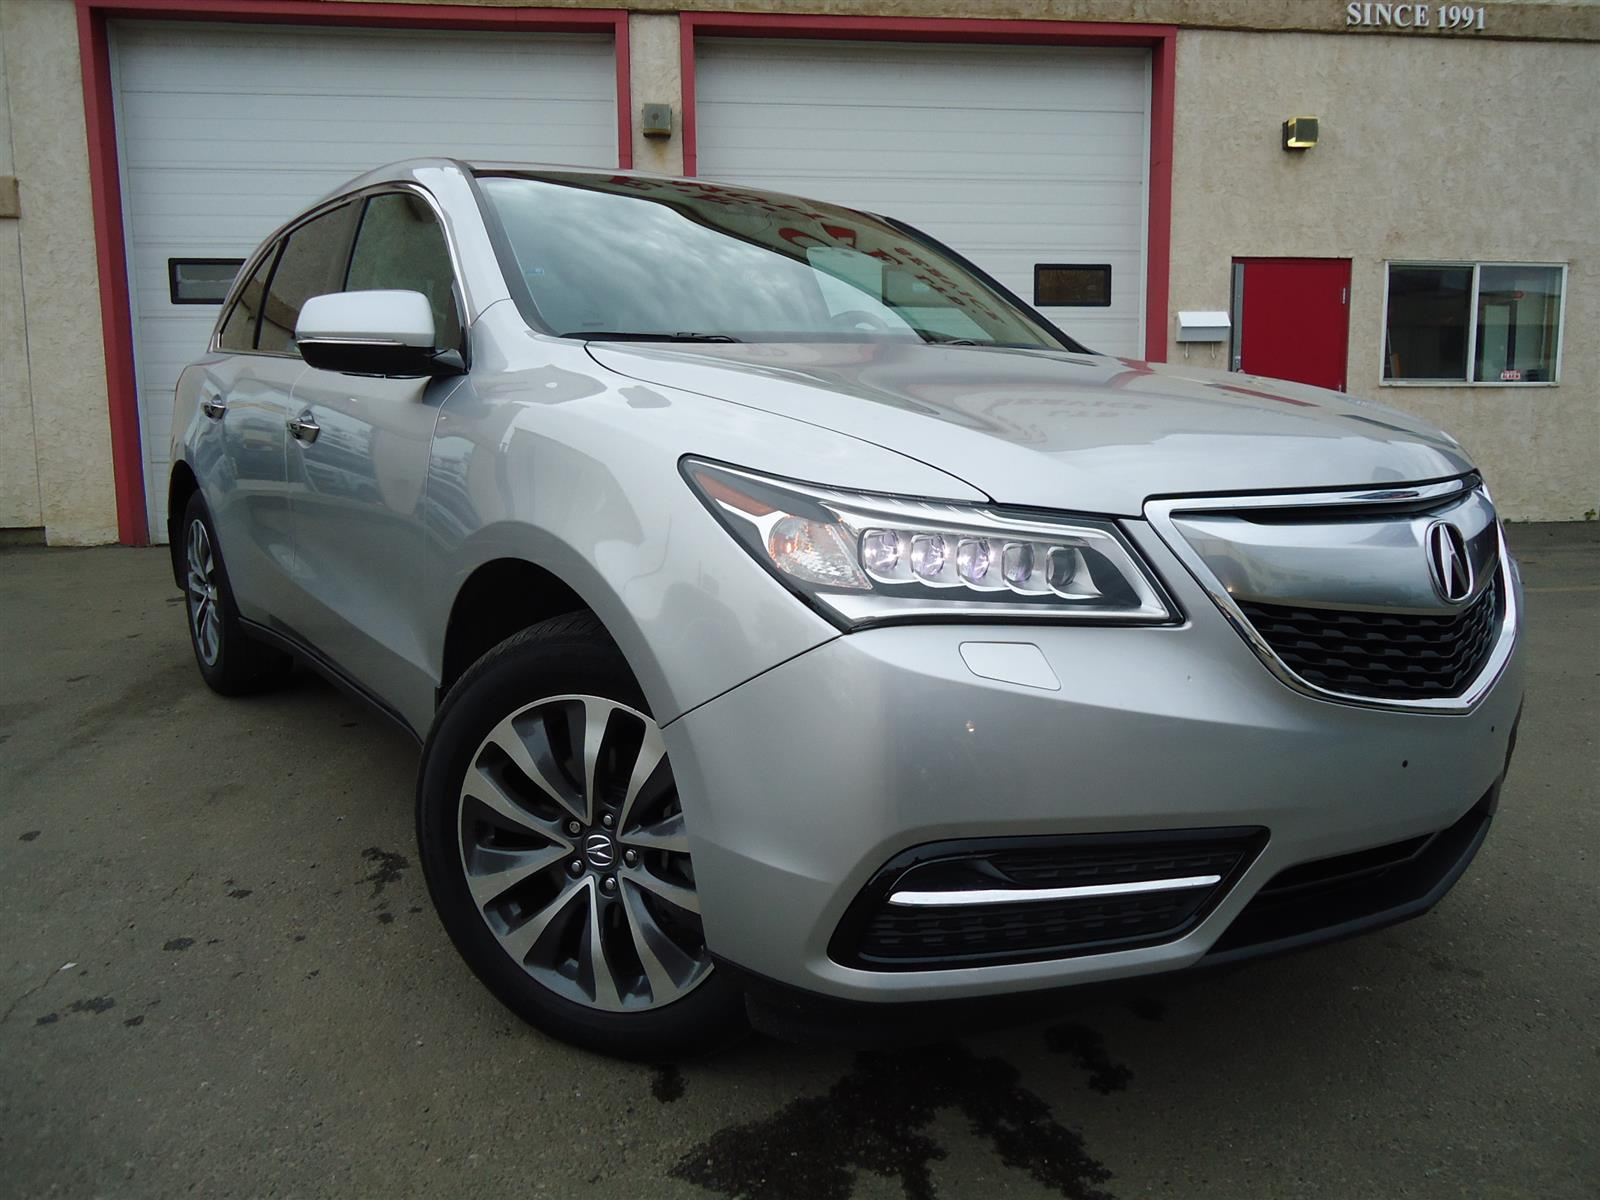 Acura MDX For Sale Great Deals On Acura MDX - Acura mdx dealers